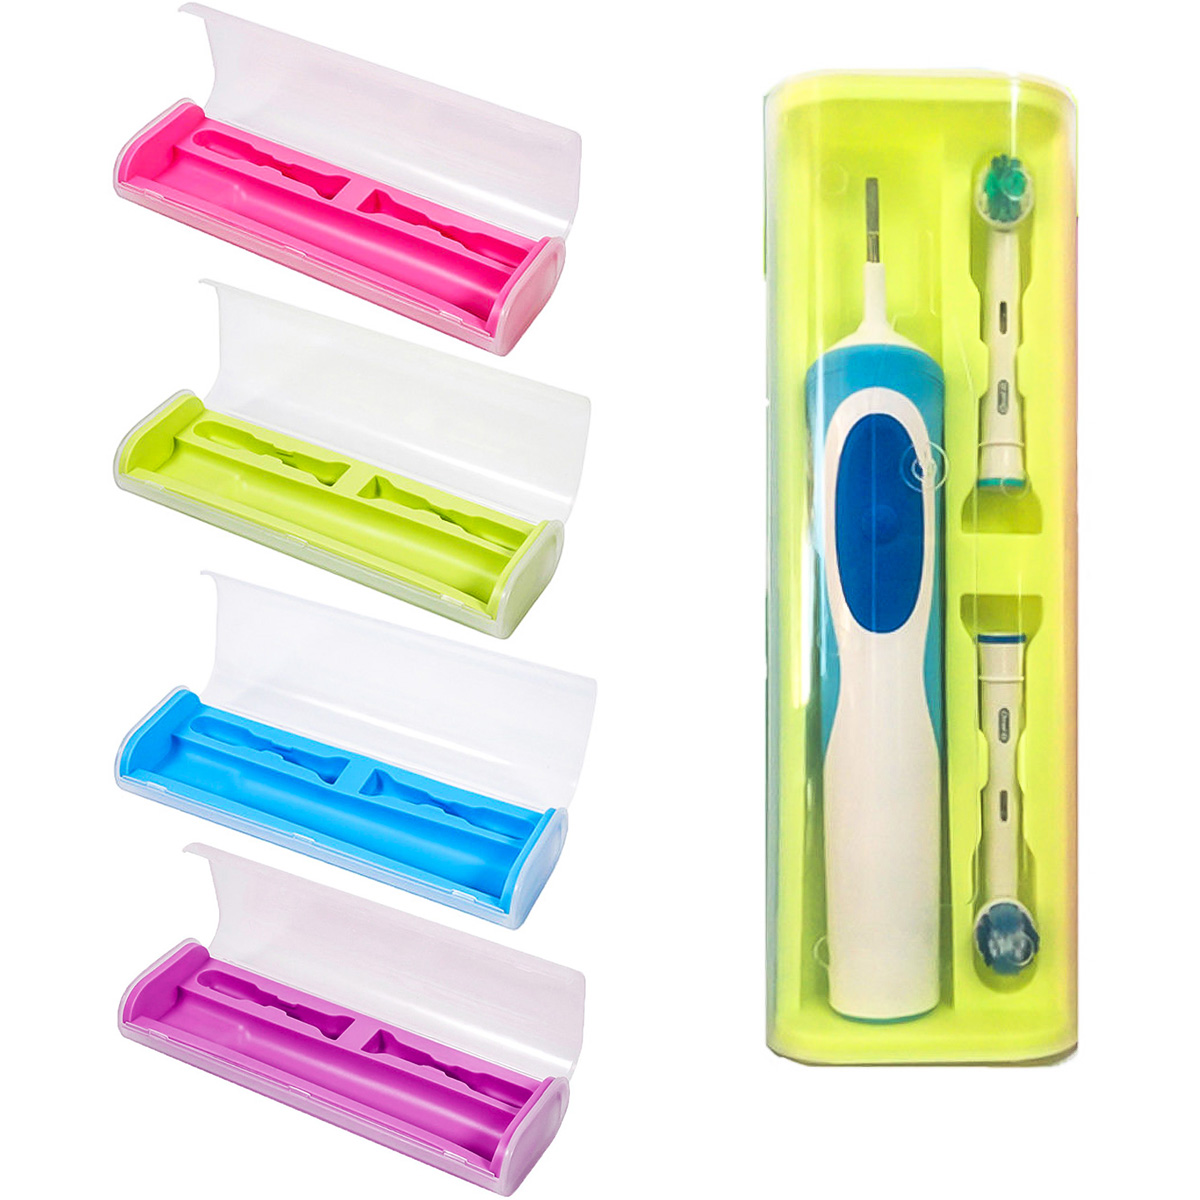 Food Grade PP + Rubber Toothbrush Holder Travel Portable Toothbrush Storage Box Cover Case For Oral-B Electric Brush image